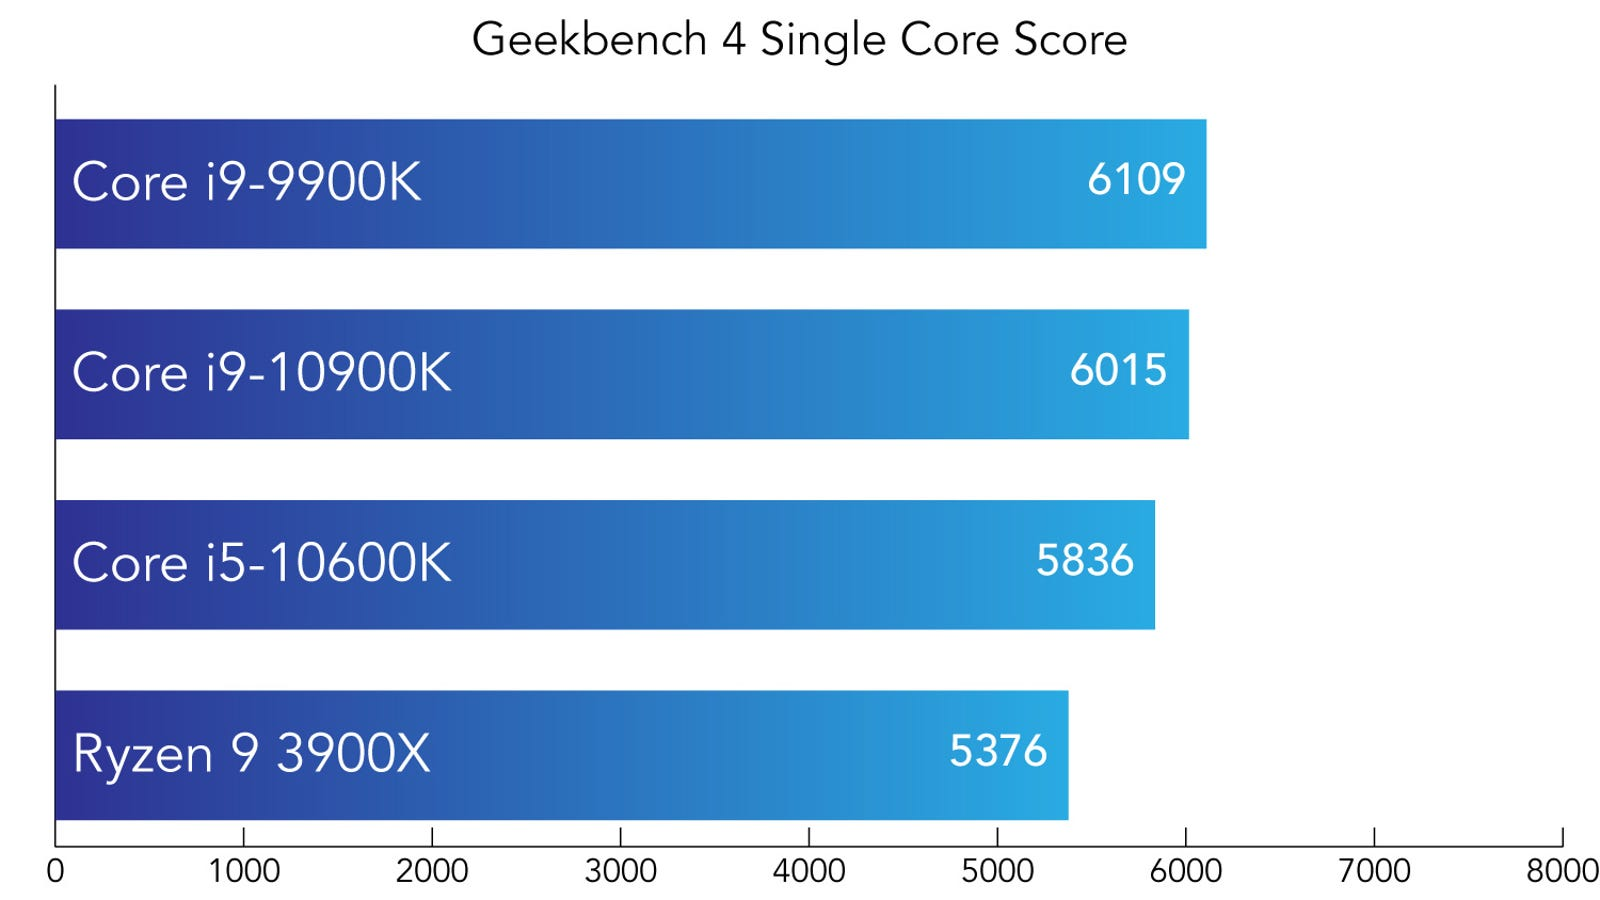 CPU single core processing score. Higher is better.